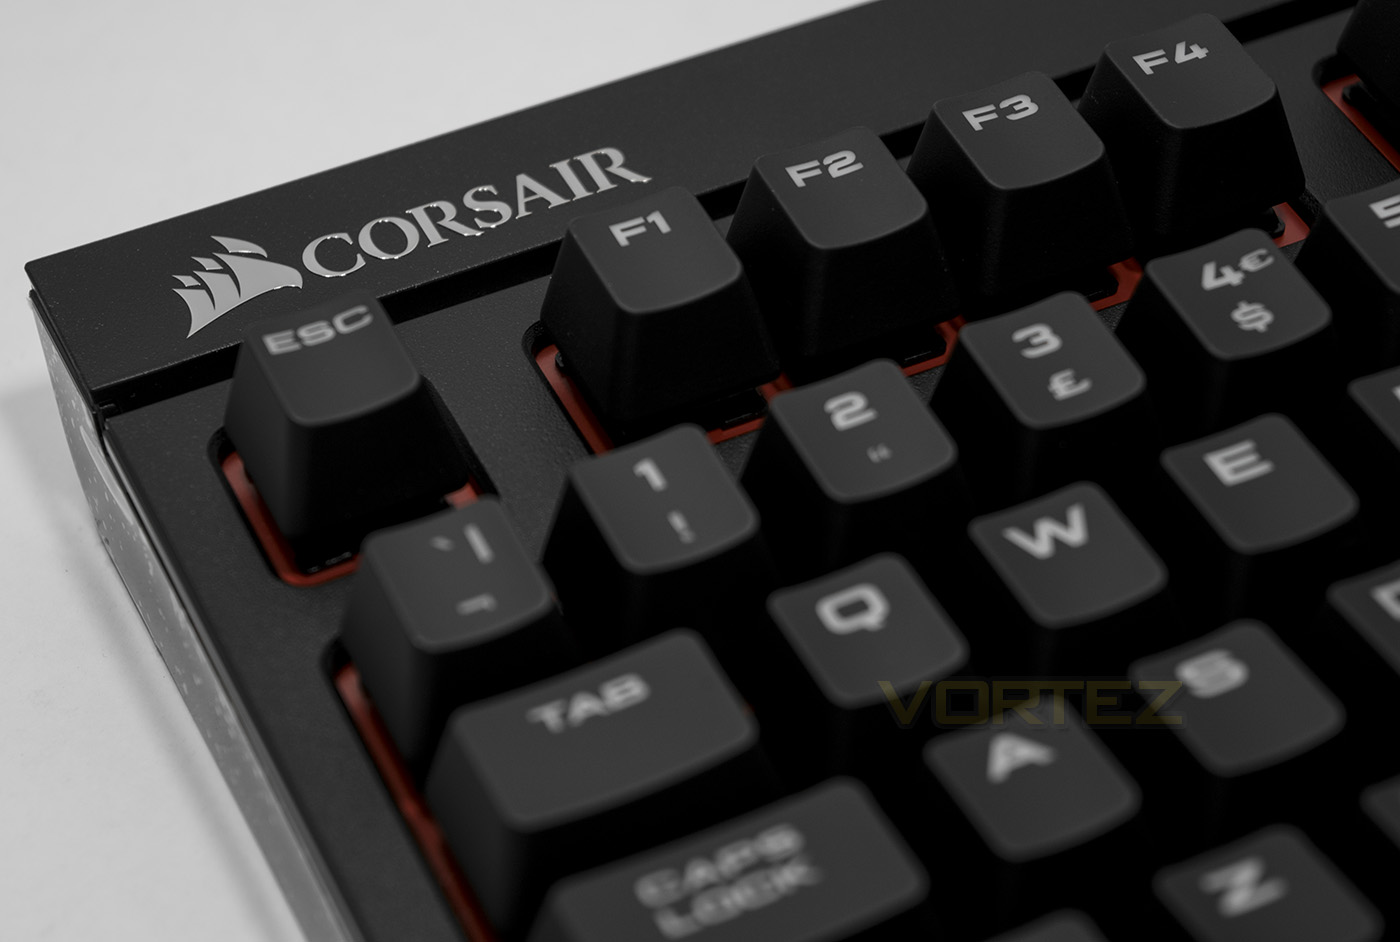 Corsair Strafe Review Introduction Gaming Rgb Cherry Mx Brown Mechanical Switches As Opposed To Some Competitors The Comes In Red And Flavours While Additionally With